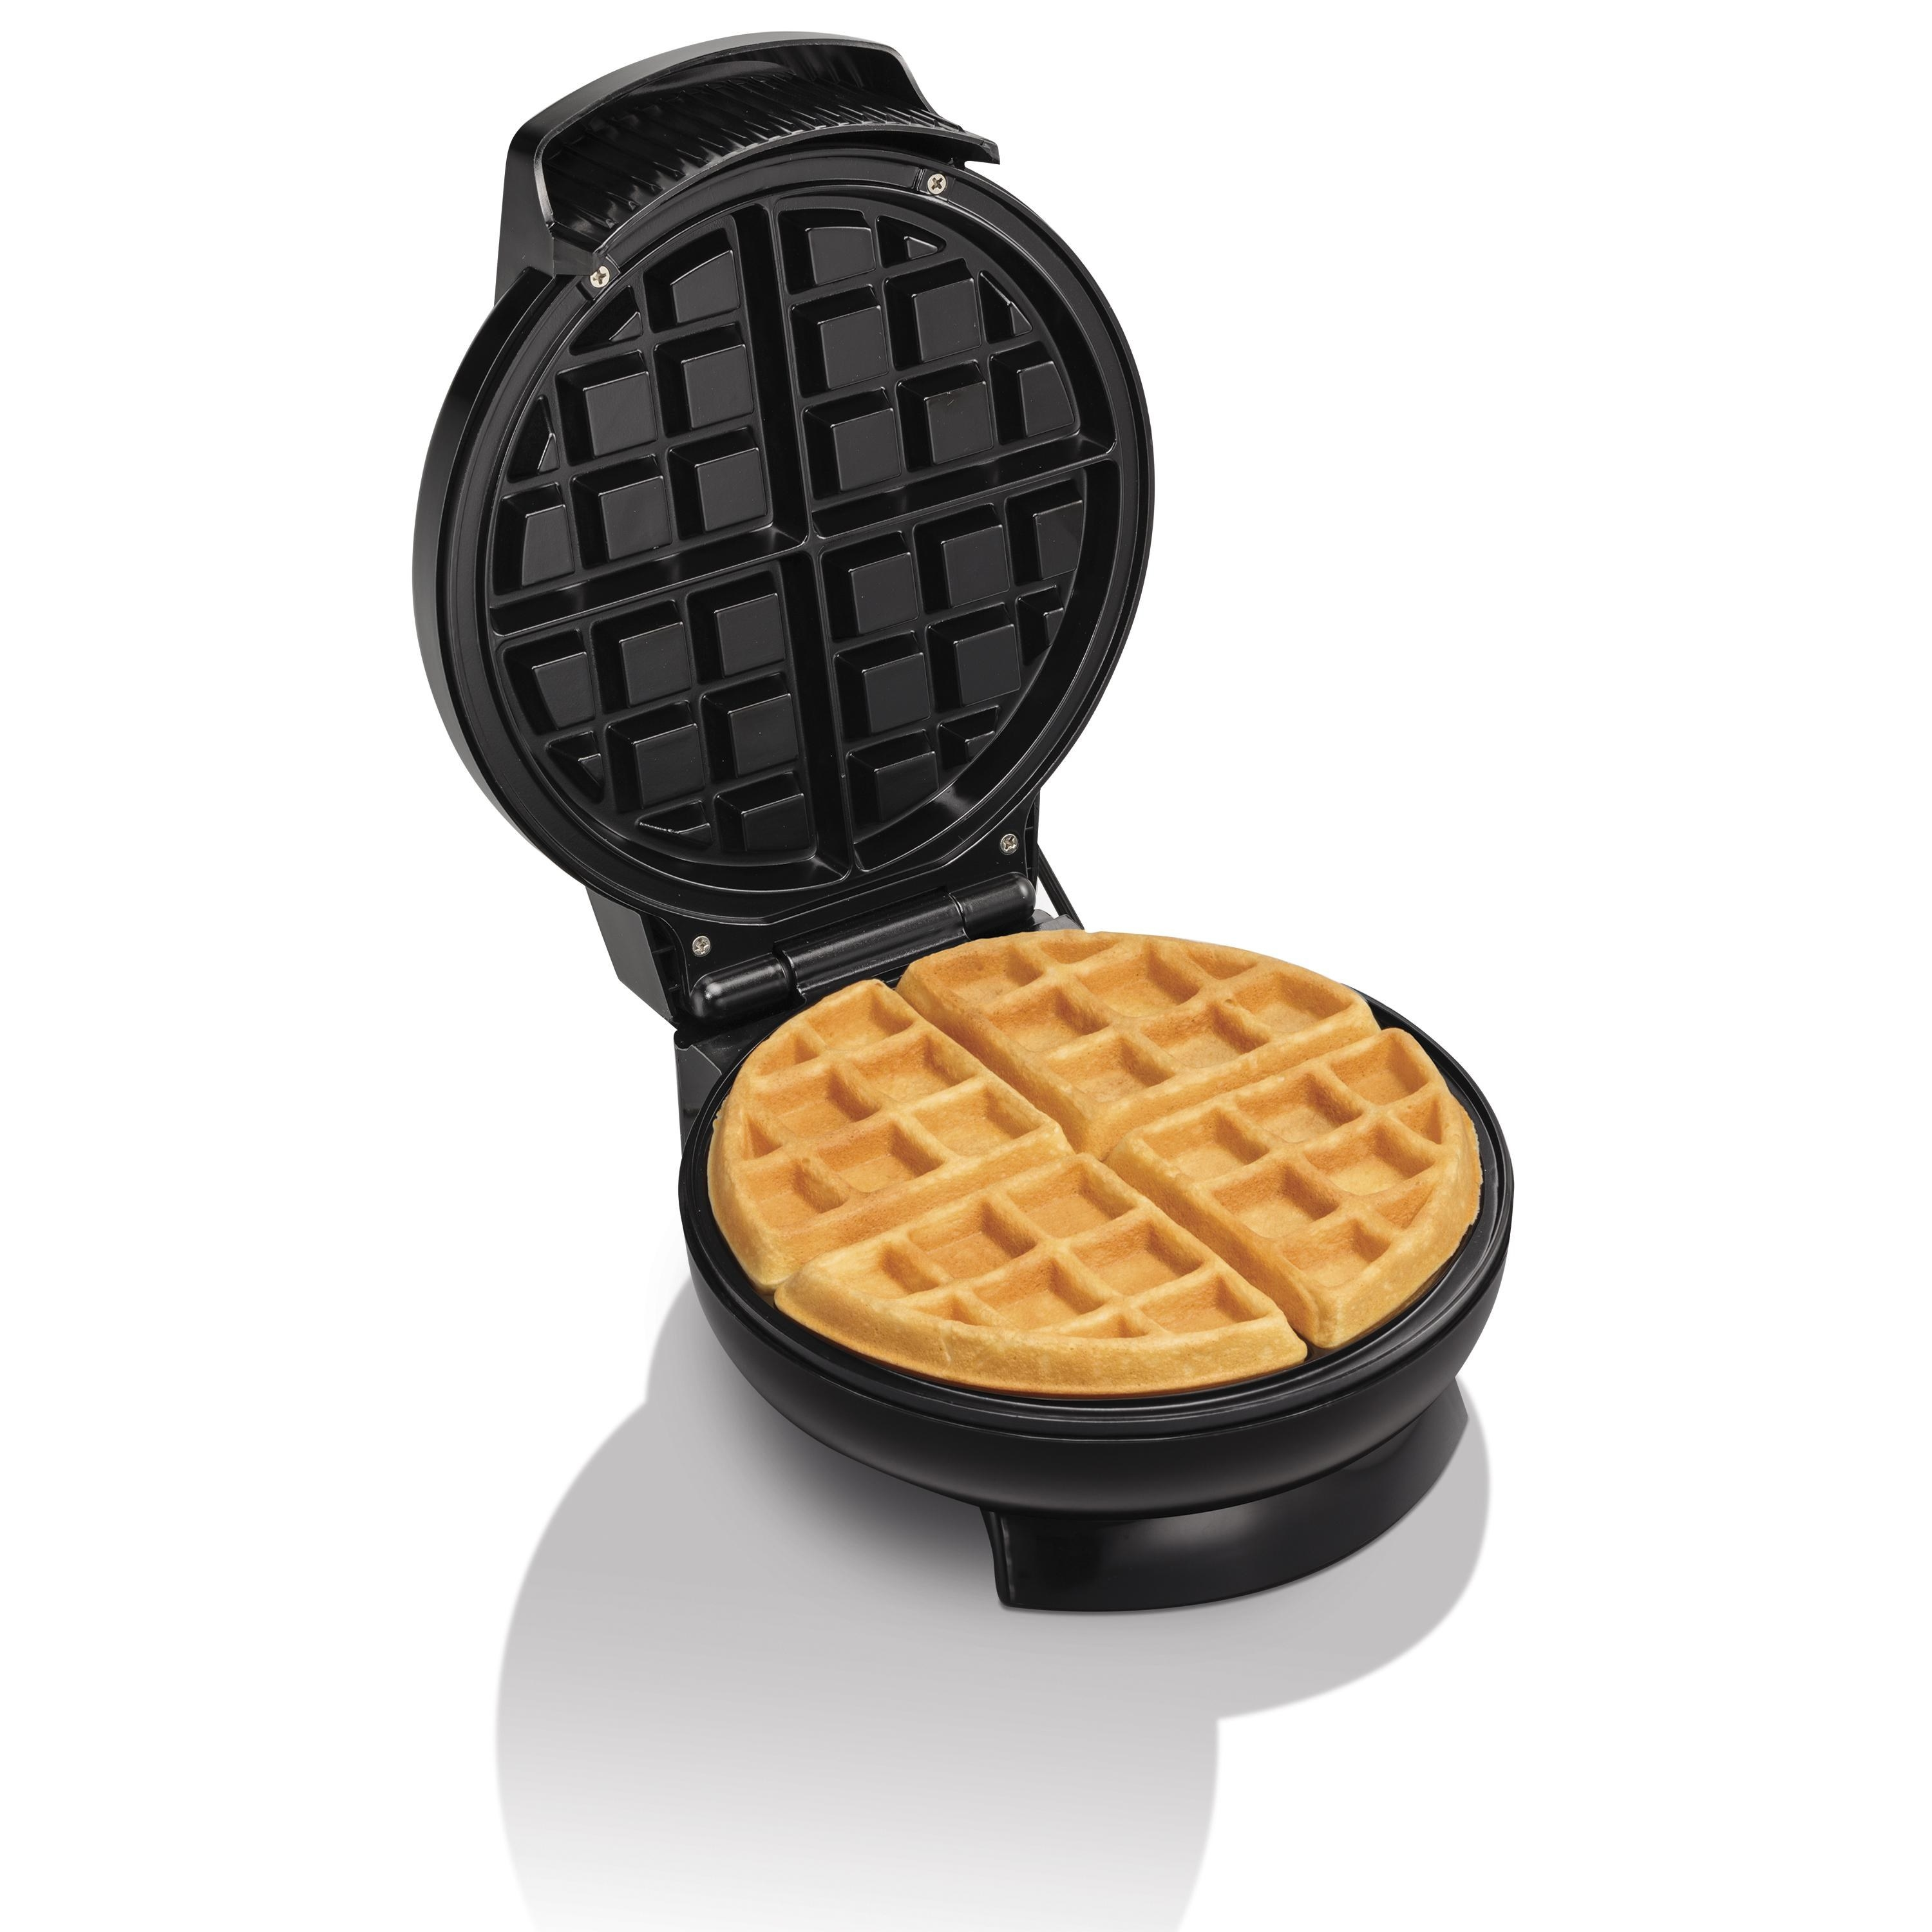 The waffle maker with a waffle in it